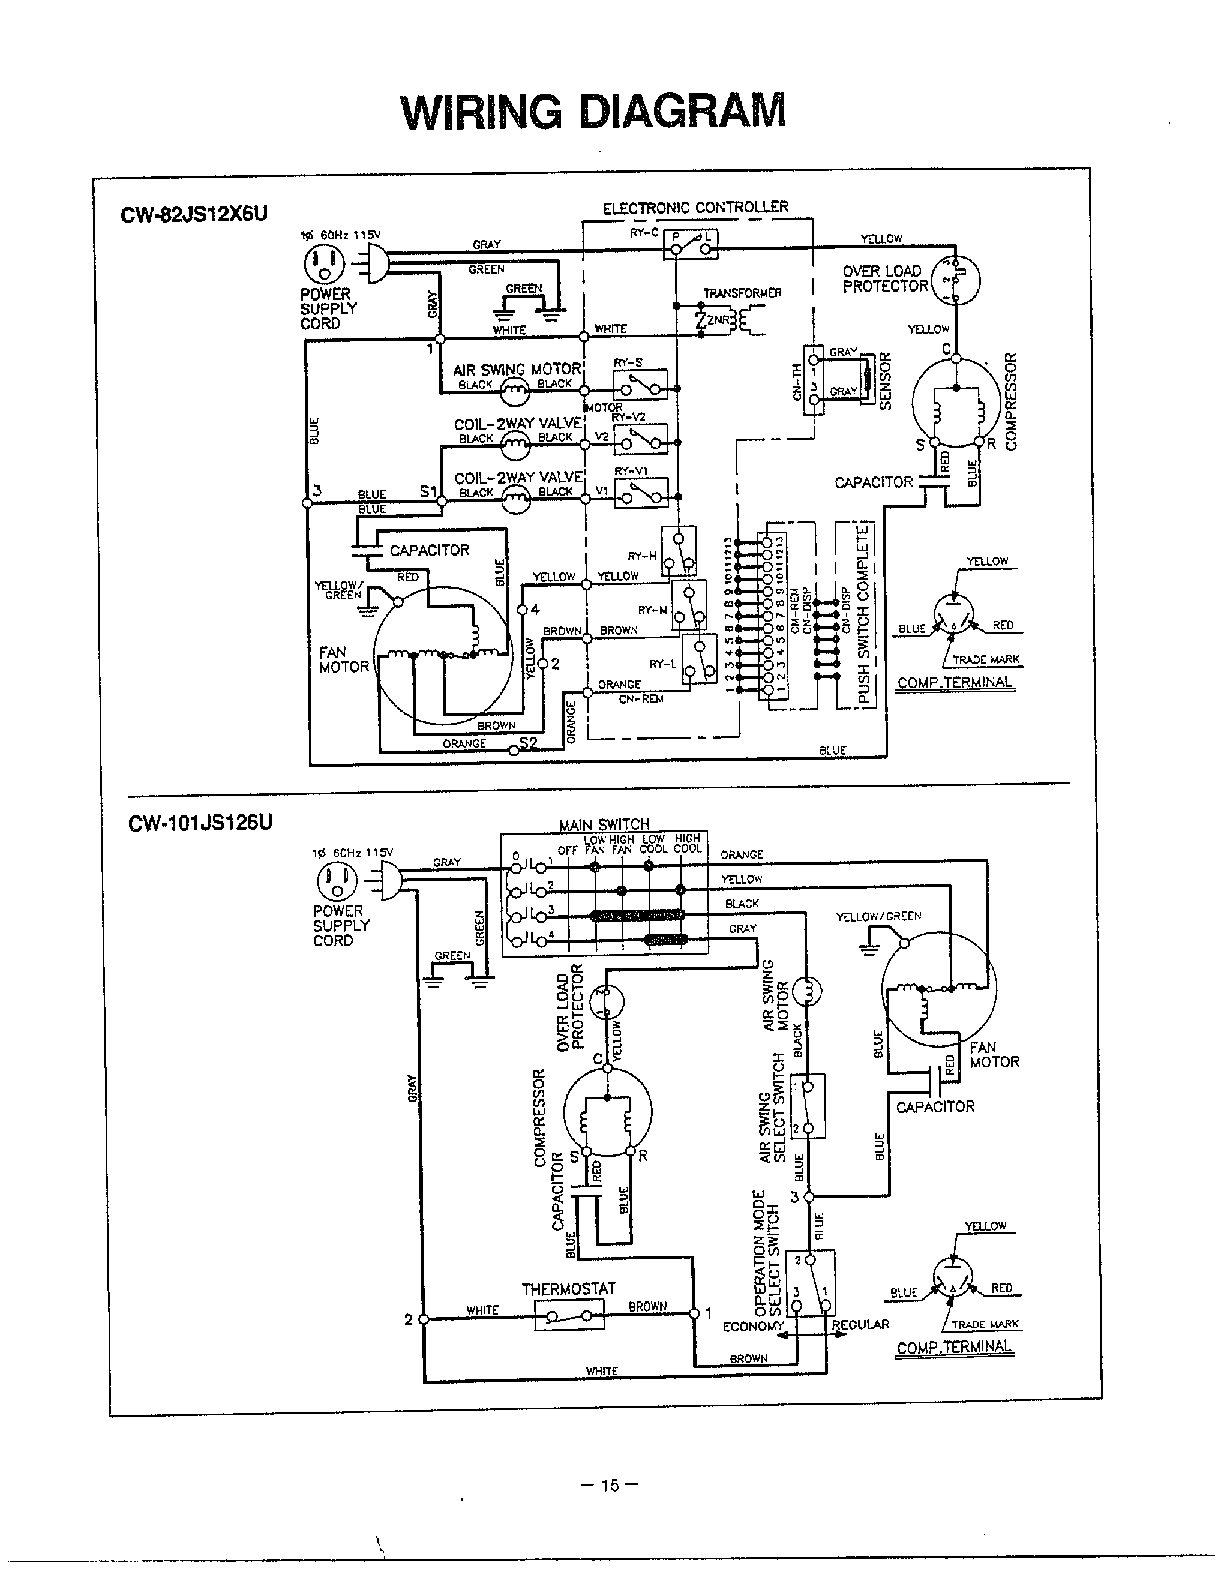 small resolution of mc400 solenoid wiring diagram ezgo gas workhorse wiring diagrams rh loridyan com